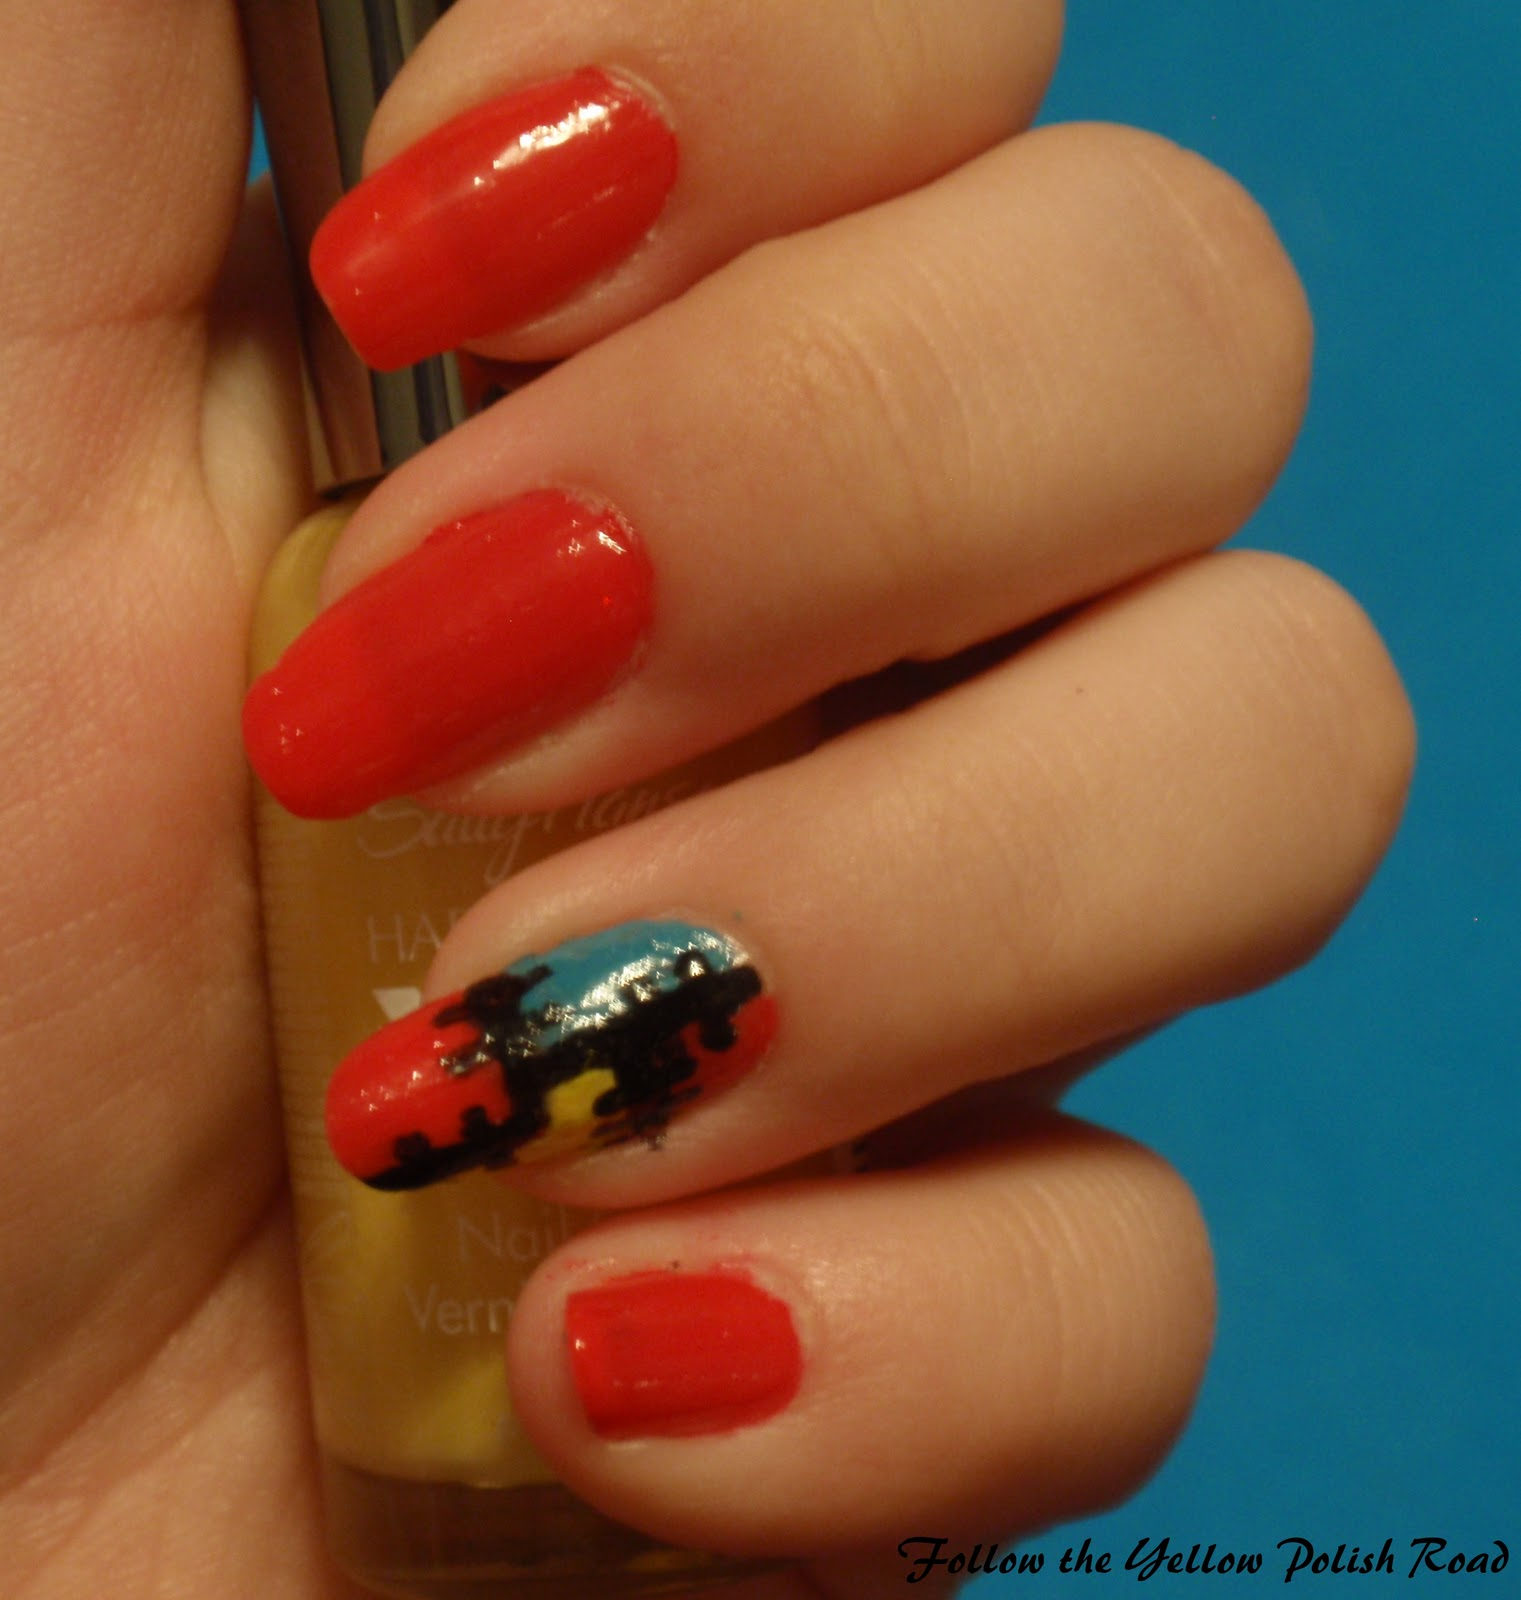 Follow the Yellow Polish Road: Patchwork Nails